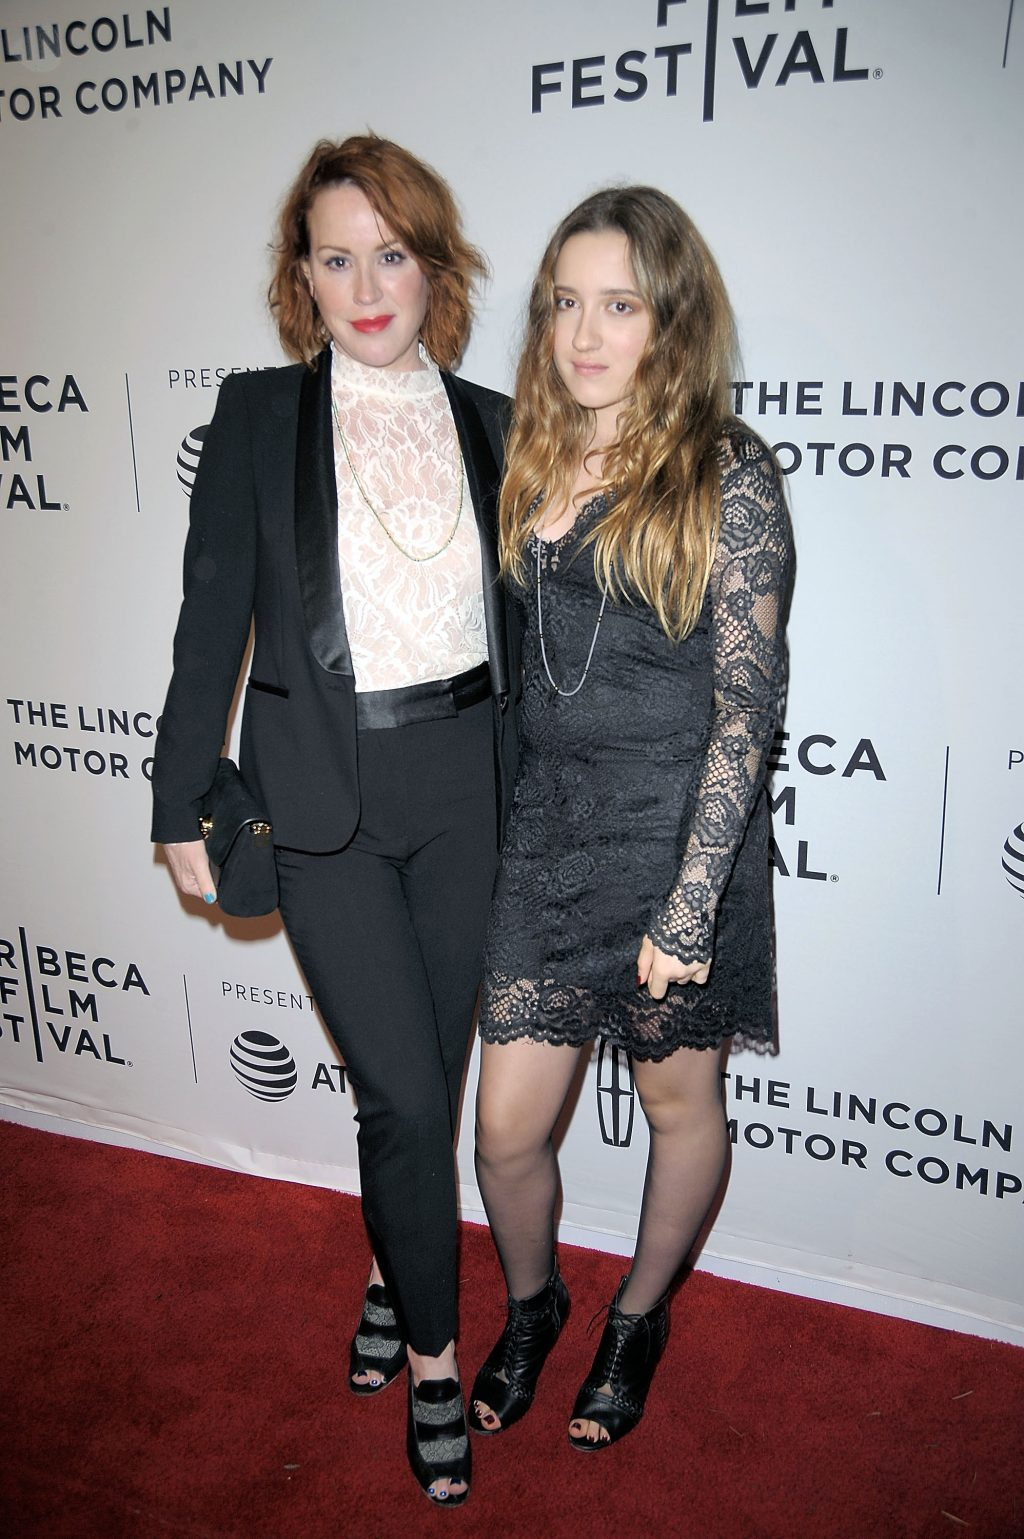 Molly Ringwald and Mathilda Gianopoulos